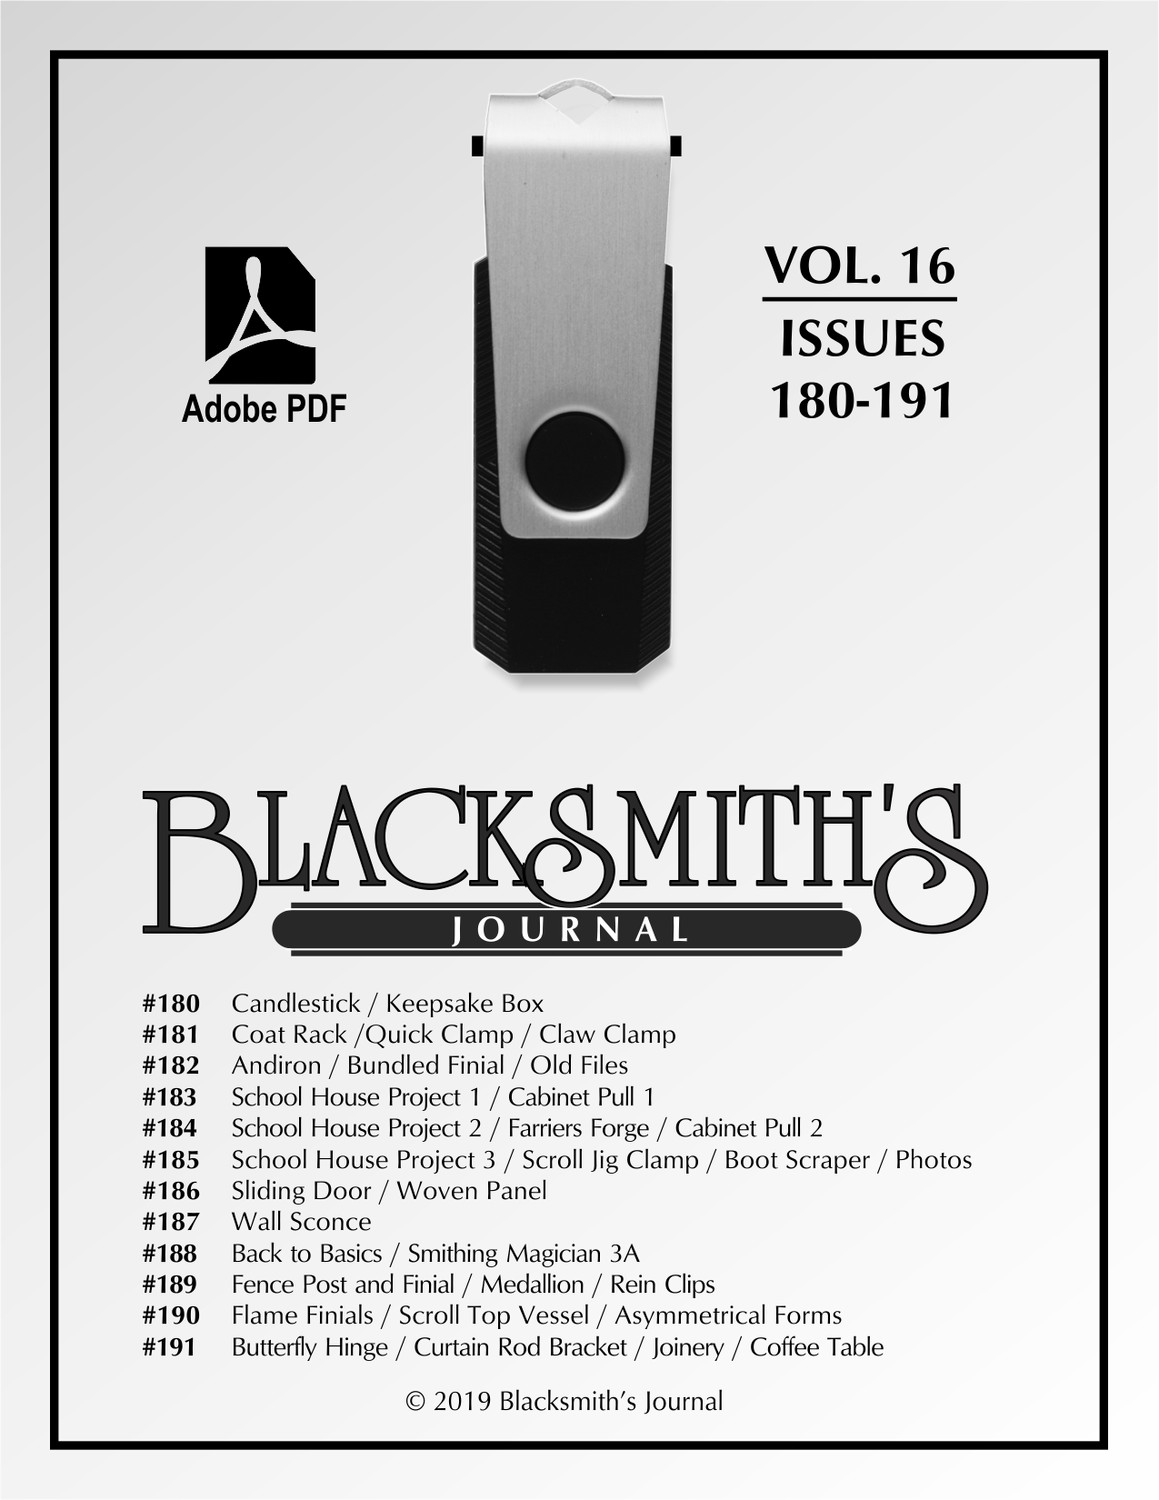 USB Flash Drive - Blacksmith's Journal Vol. 16